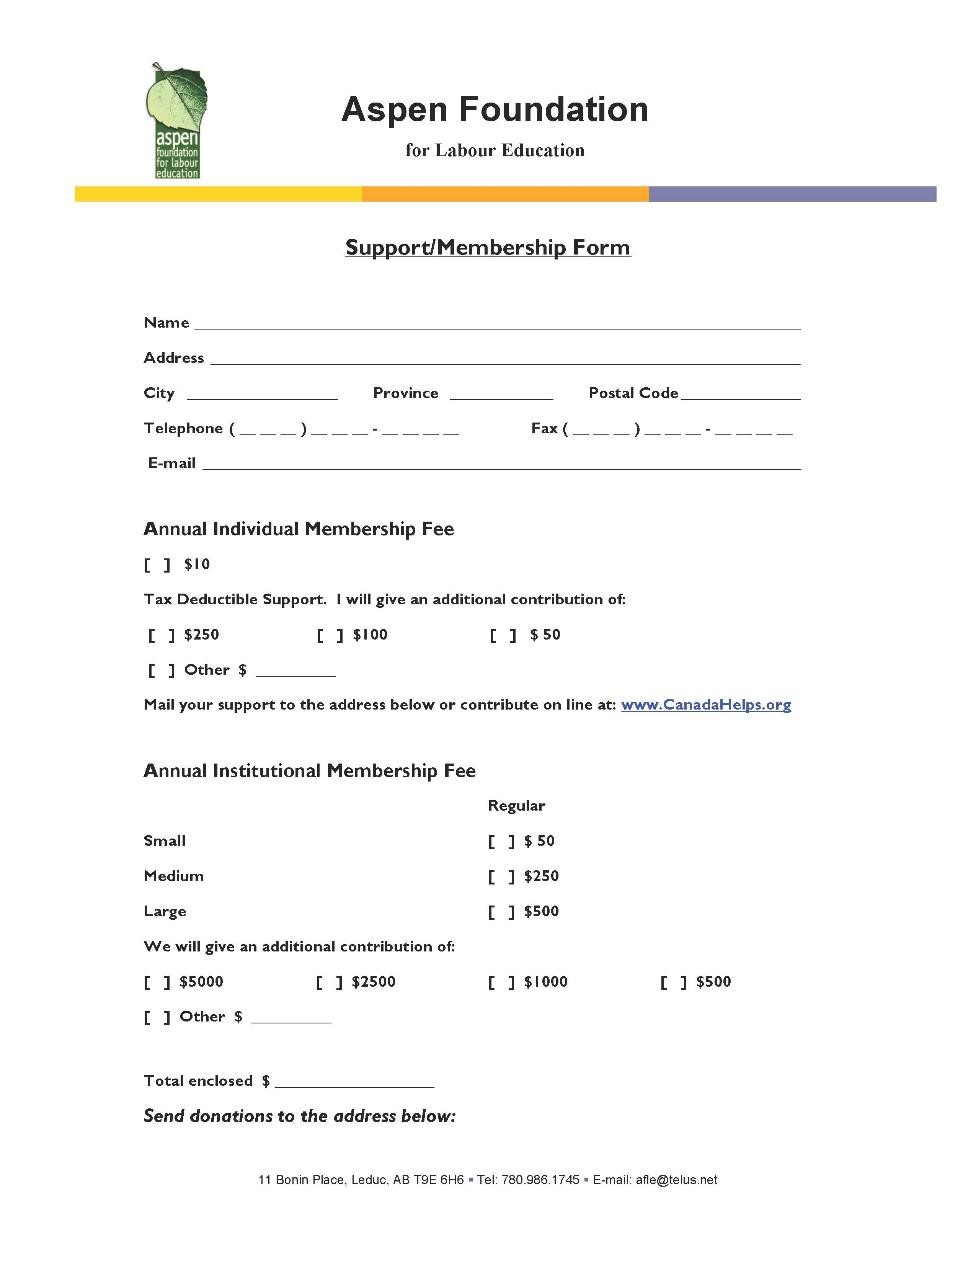 Aspen Foundation Membership Form